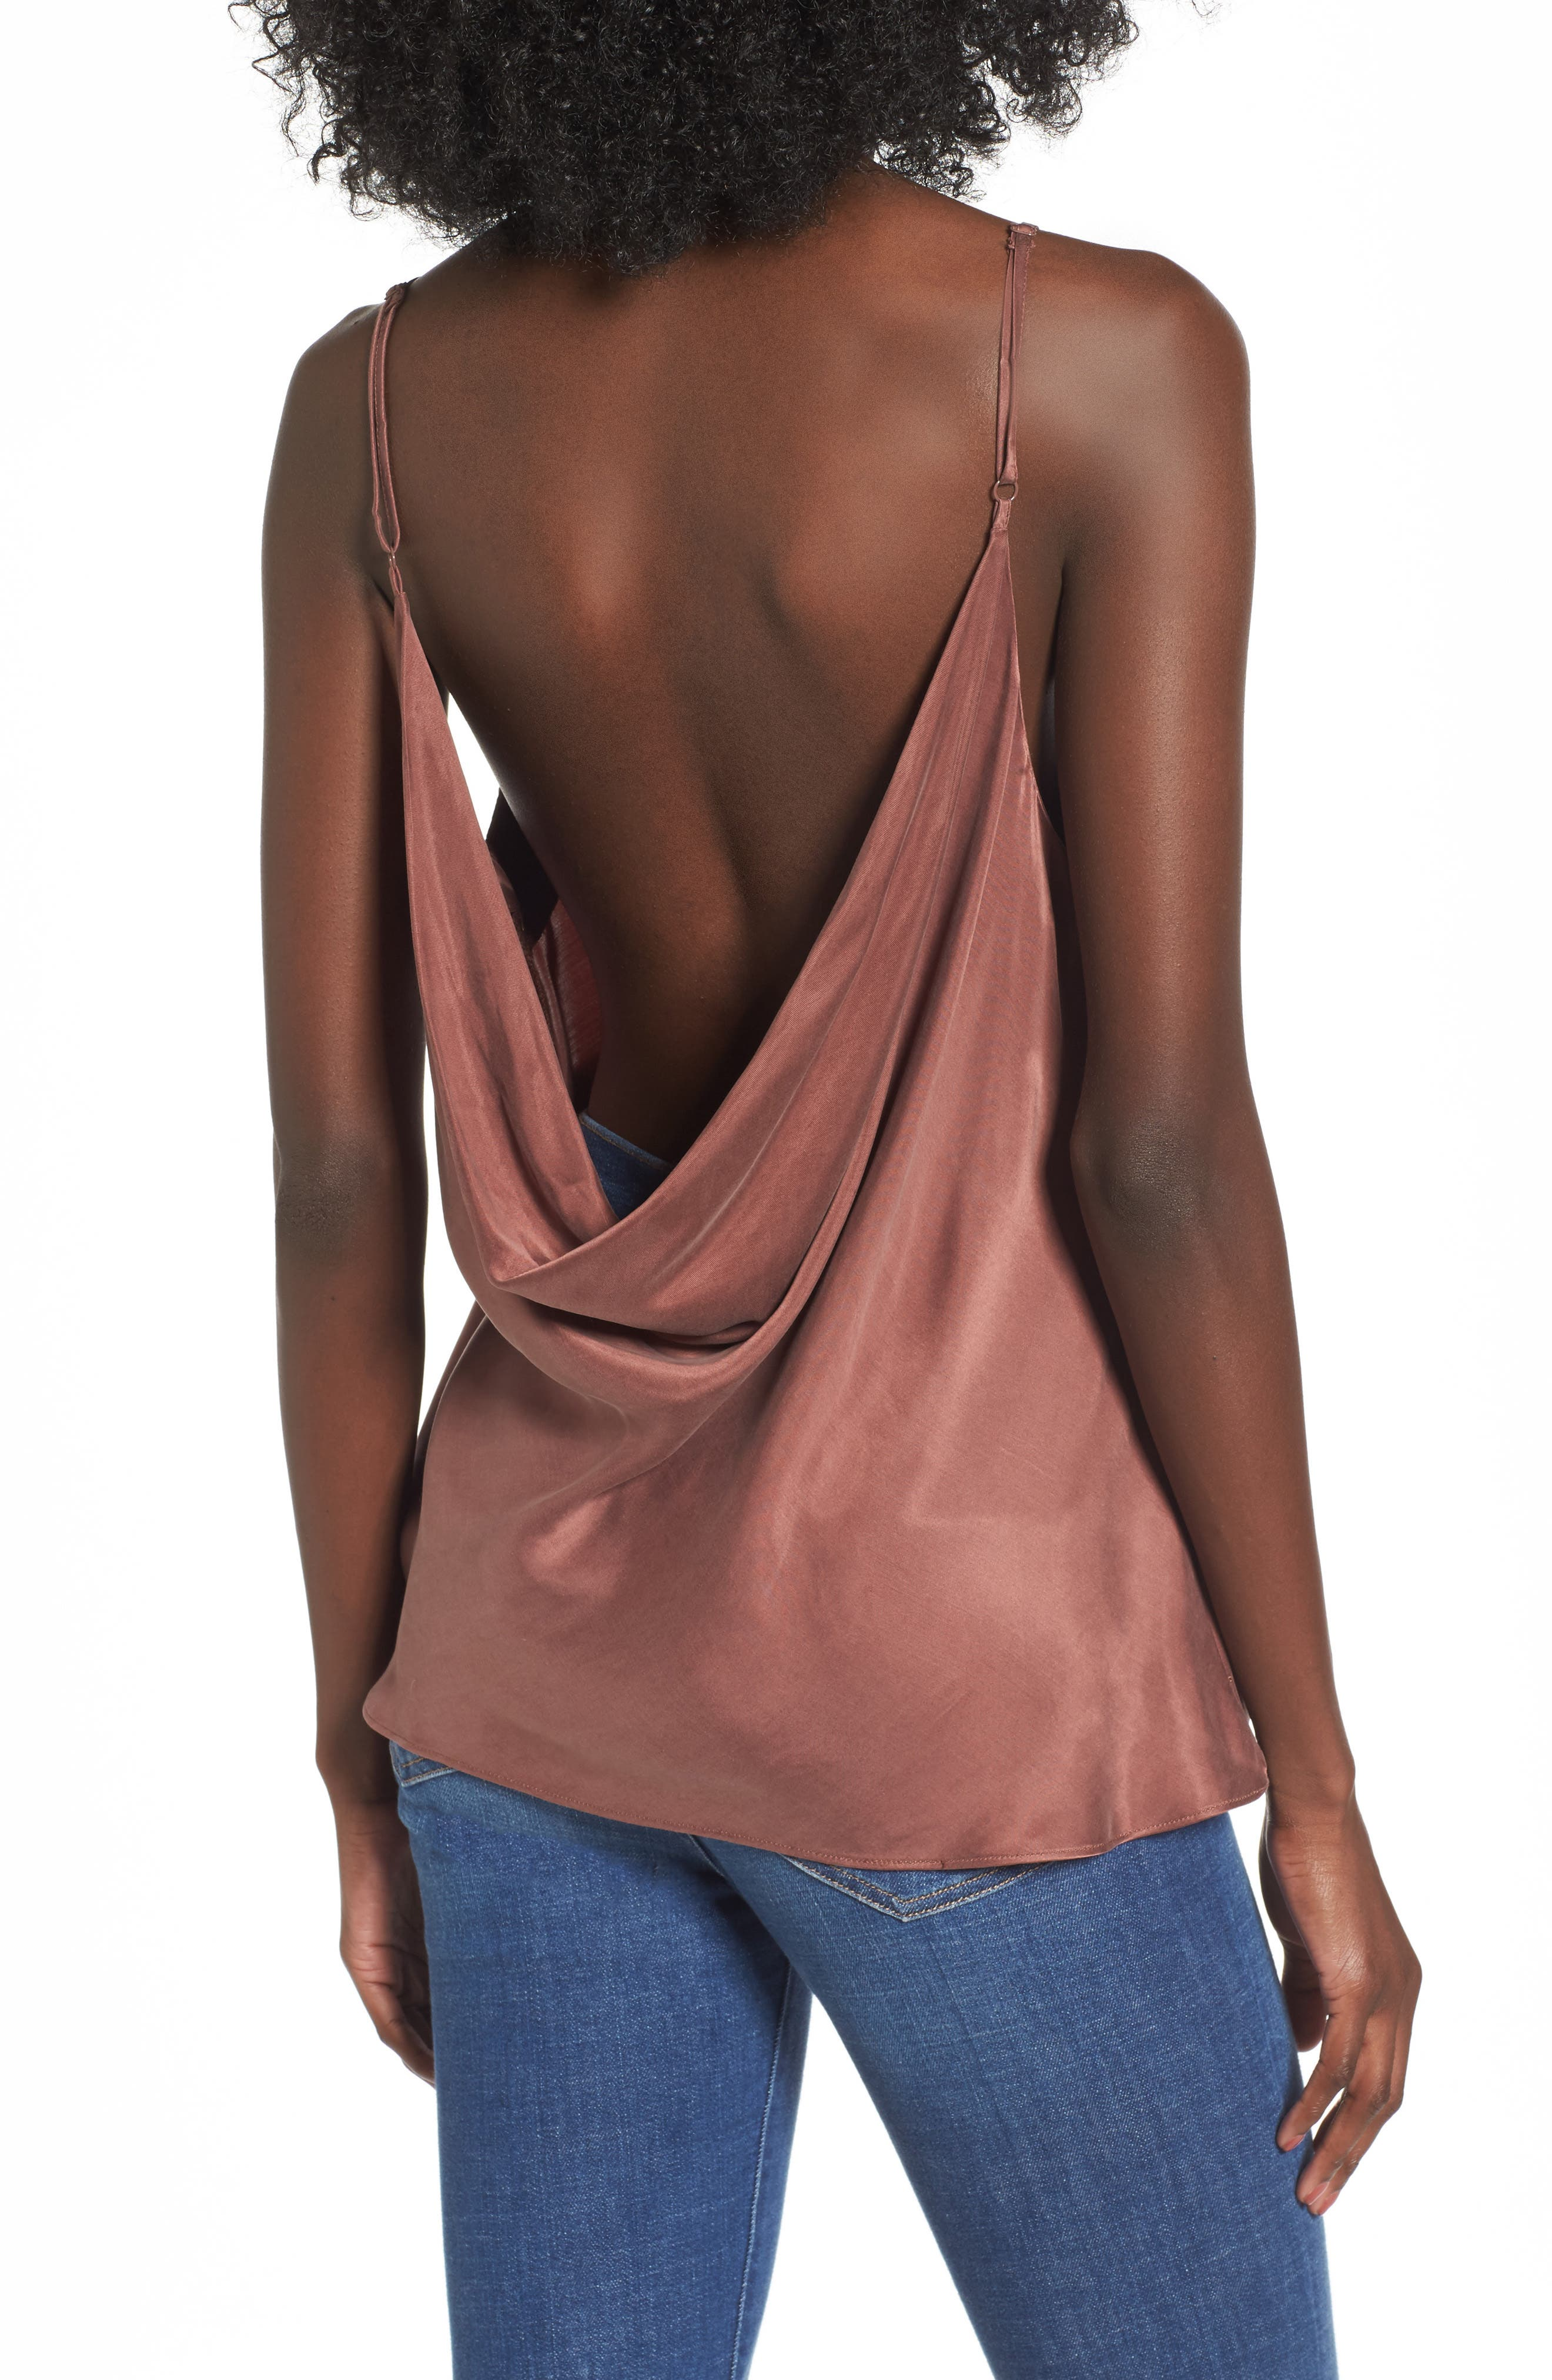 Monica Drape Back Camisole,                             Alternate thumbnail 2, color,                             Chocolate Rose